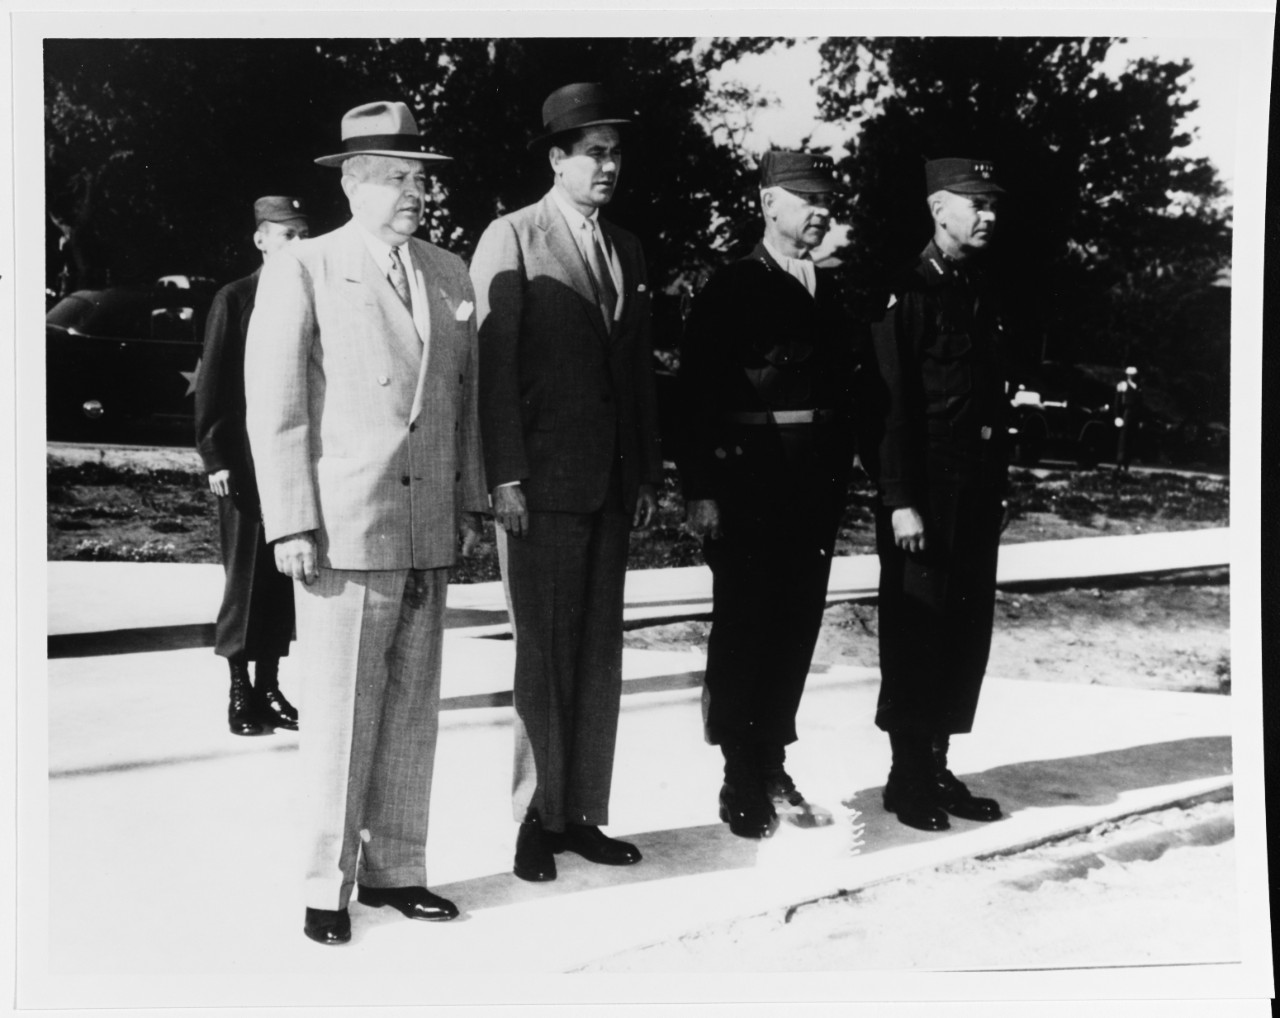 Charles E. Wilson, Secretary of Defense, Thomas S. Gates, Jr., Undersecretary of the Navy, General John E. Hull, and General Maxwell D. Taylor